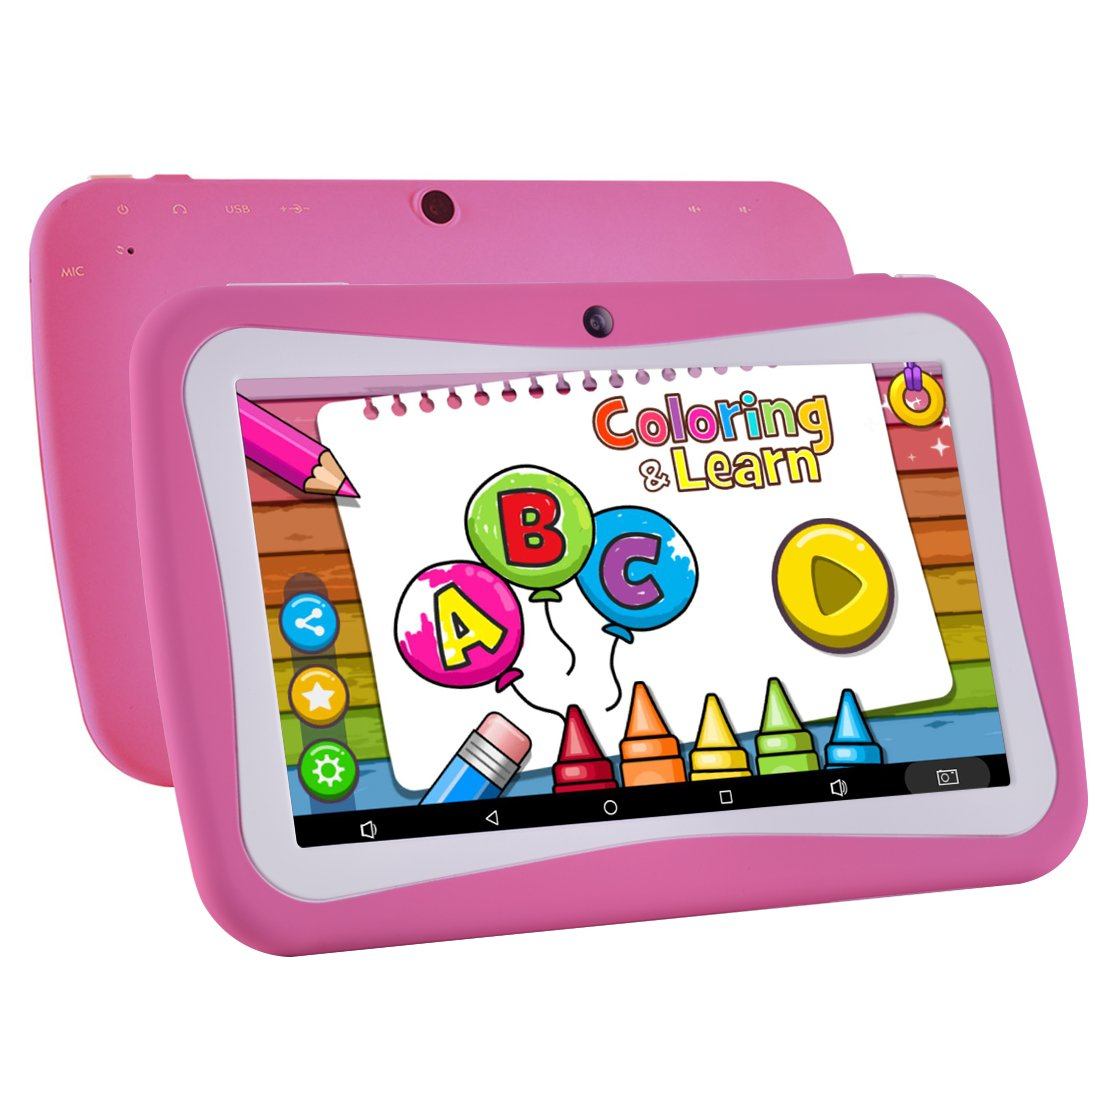 Kids Tablet Android 7.1, 7 Inch, HD Display, Quad Core, Children's Tablet, 1GB RAM + 8GB ROM, with WiFi, Dual Camera, Bluetooth, Educational, Multi Touch Screen Kid Model, Parental Control …